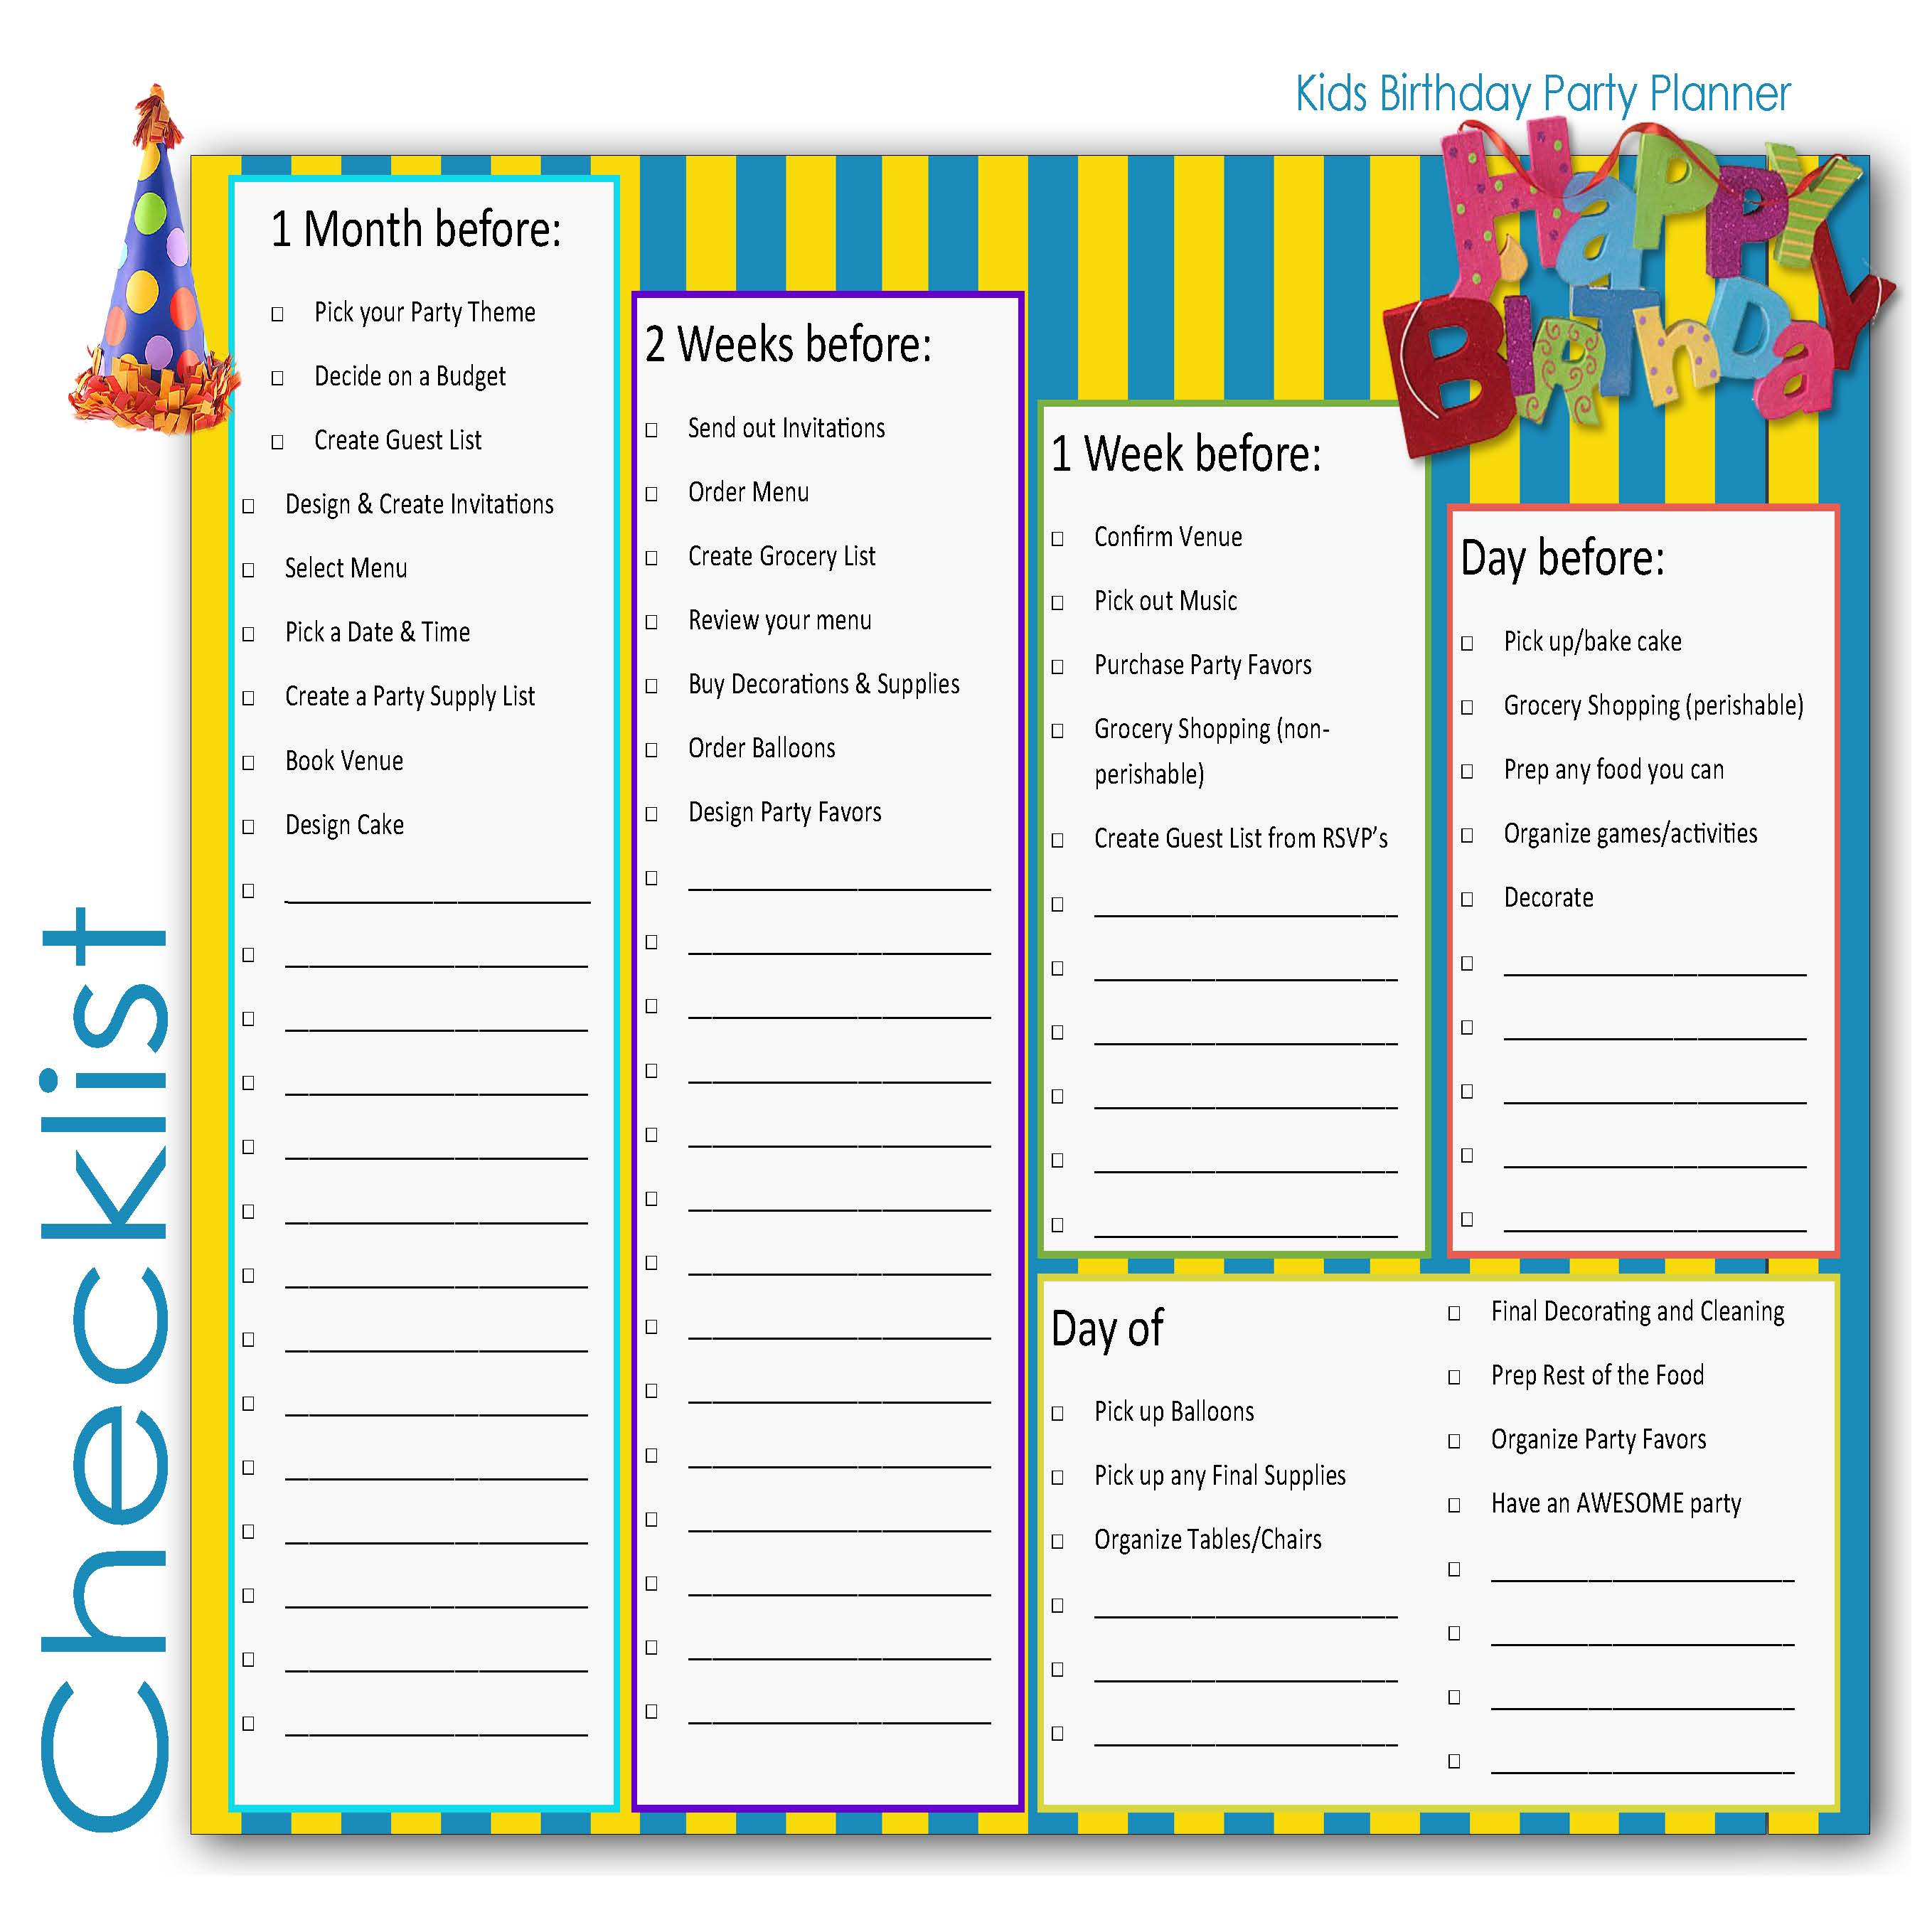 Children Birthd Y P Rty Pl Nner Checklist Kids